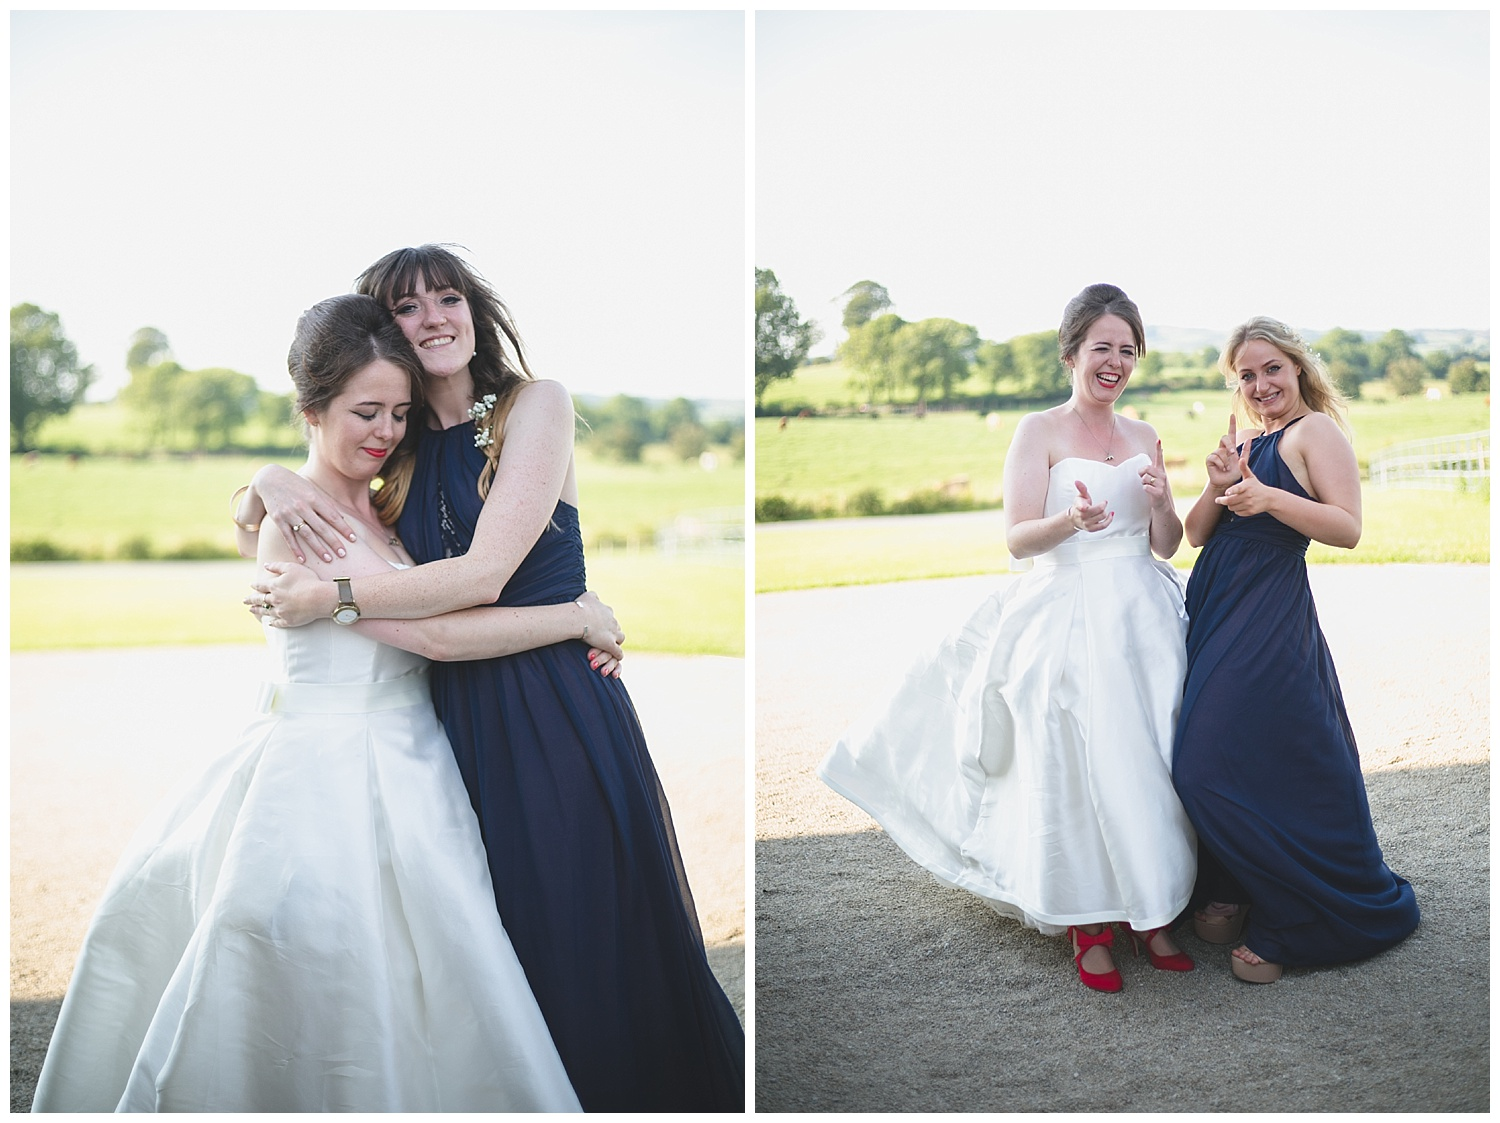 Hugs and cute joking photographs with bridesmaids